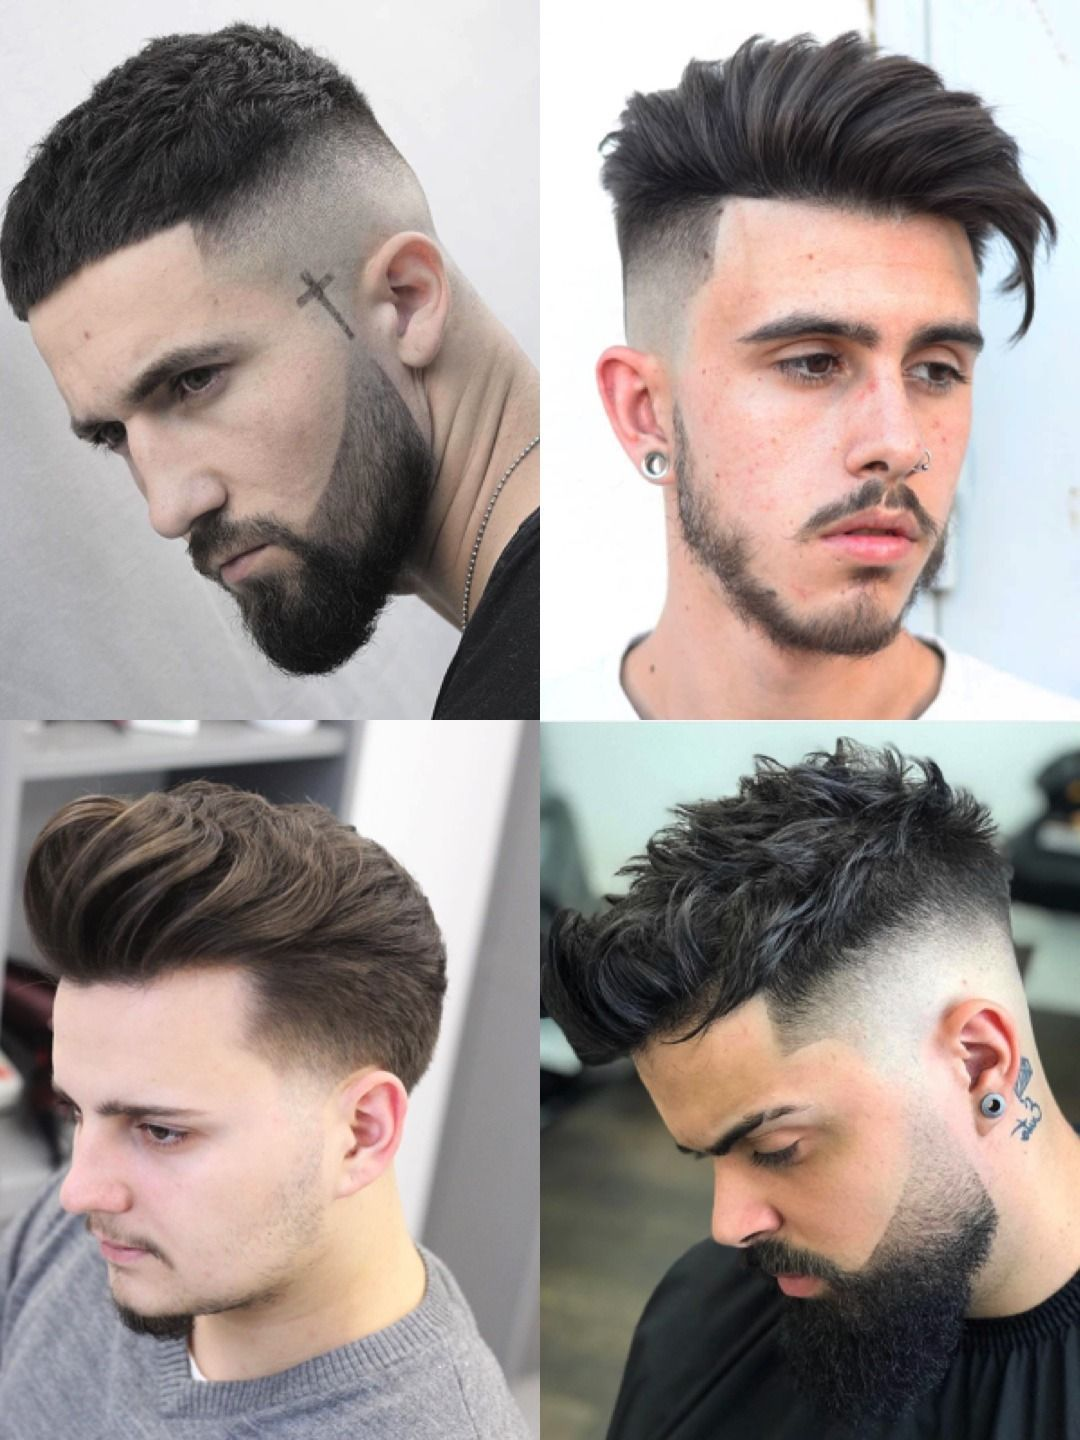 Awesome Men Hairstyles Names Fresh Men Hairstyles Names 79 With